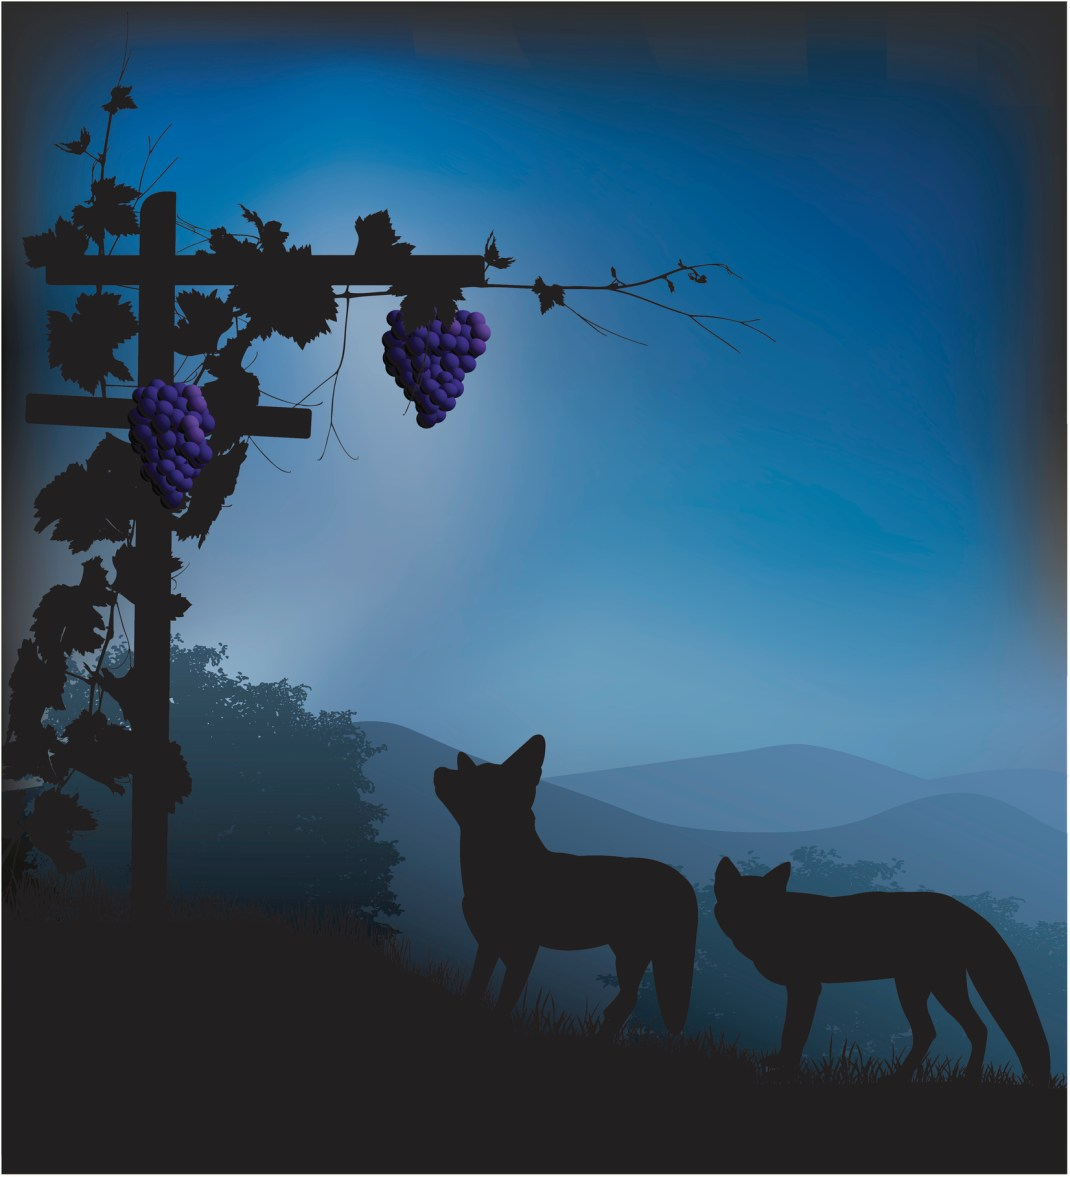 Foxes and grapes